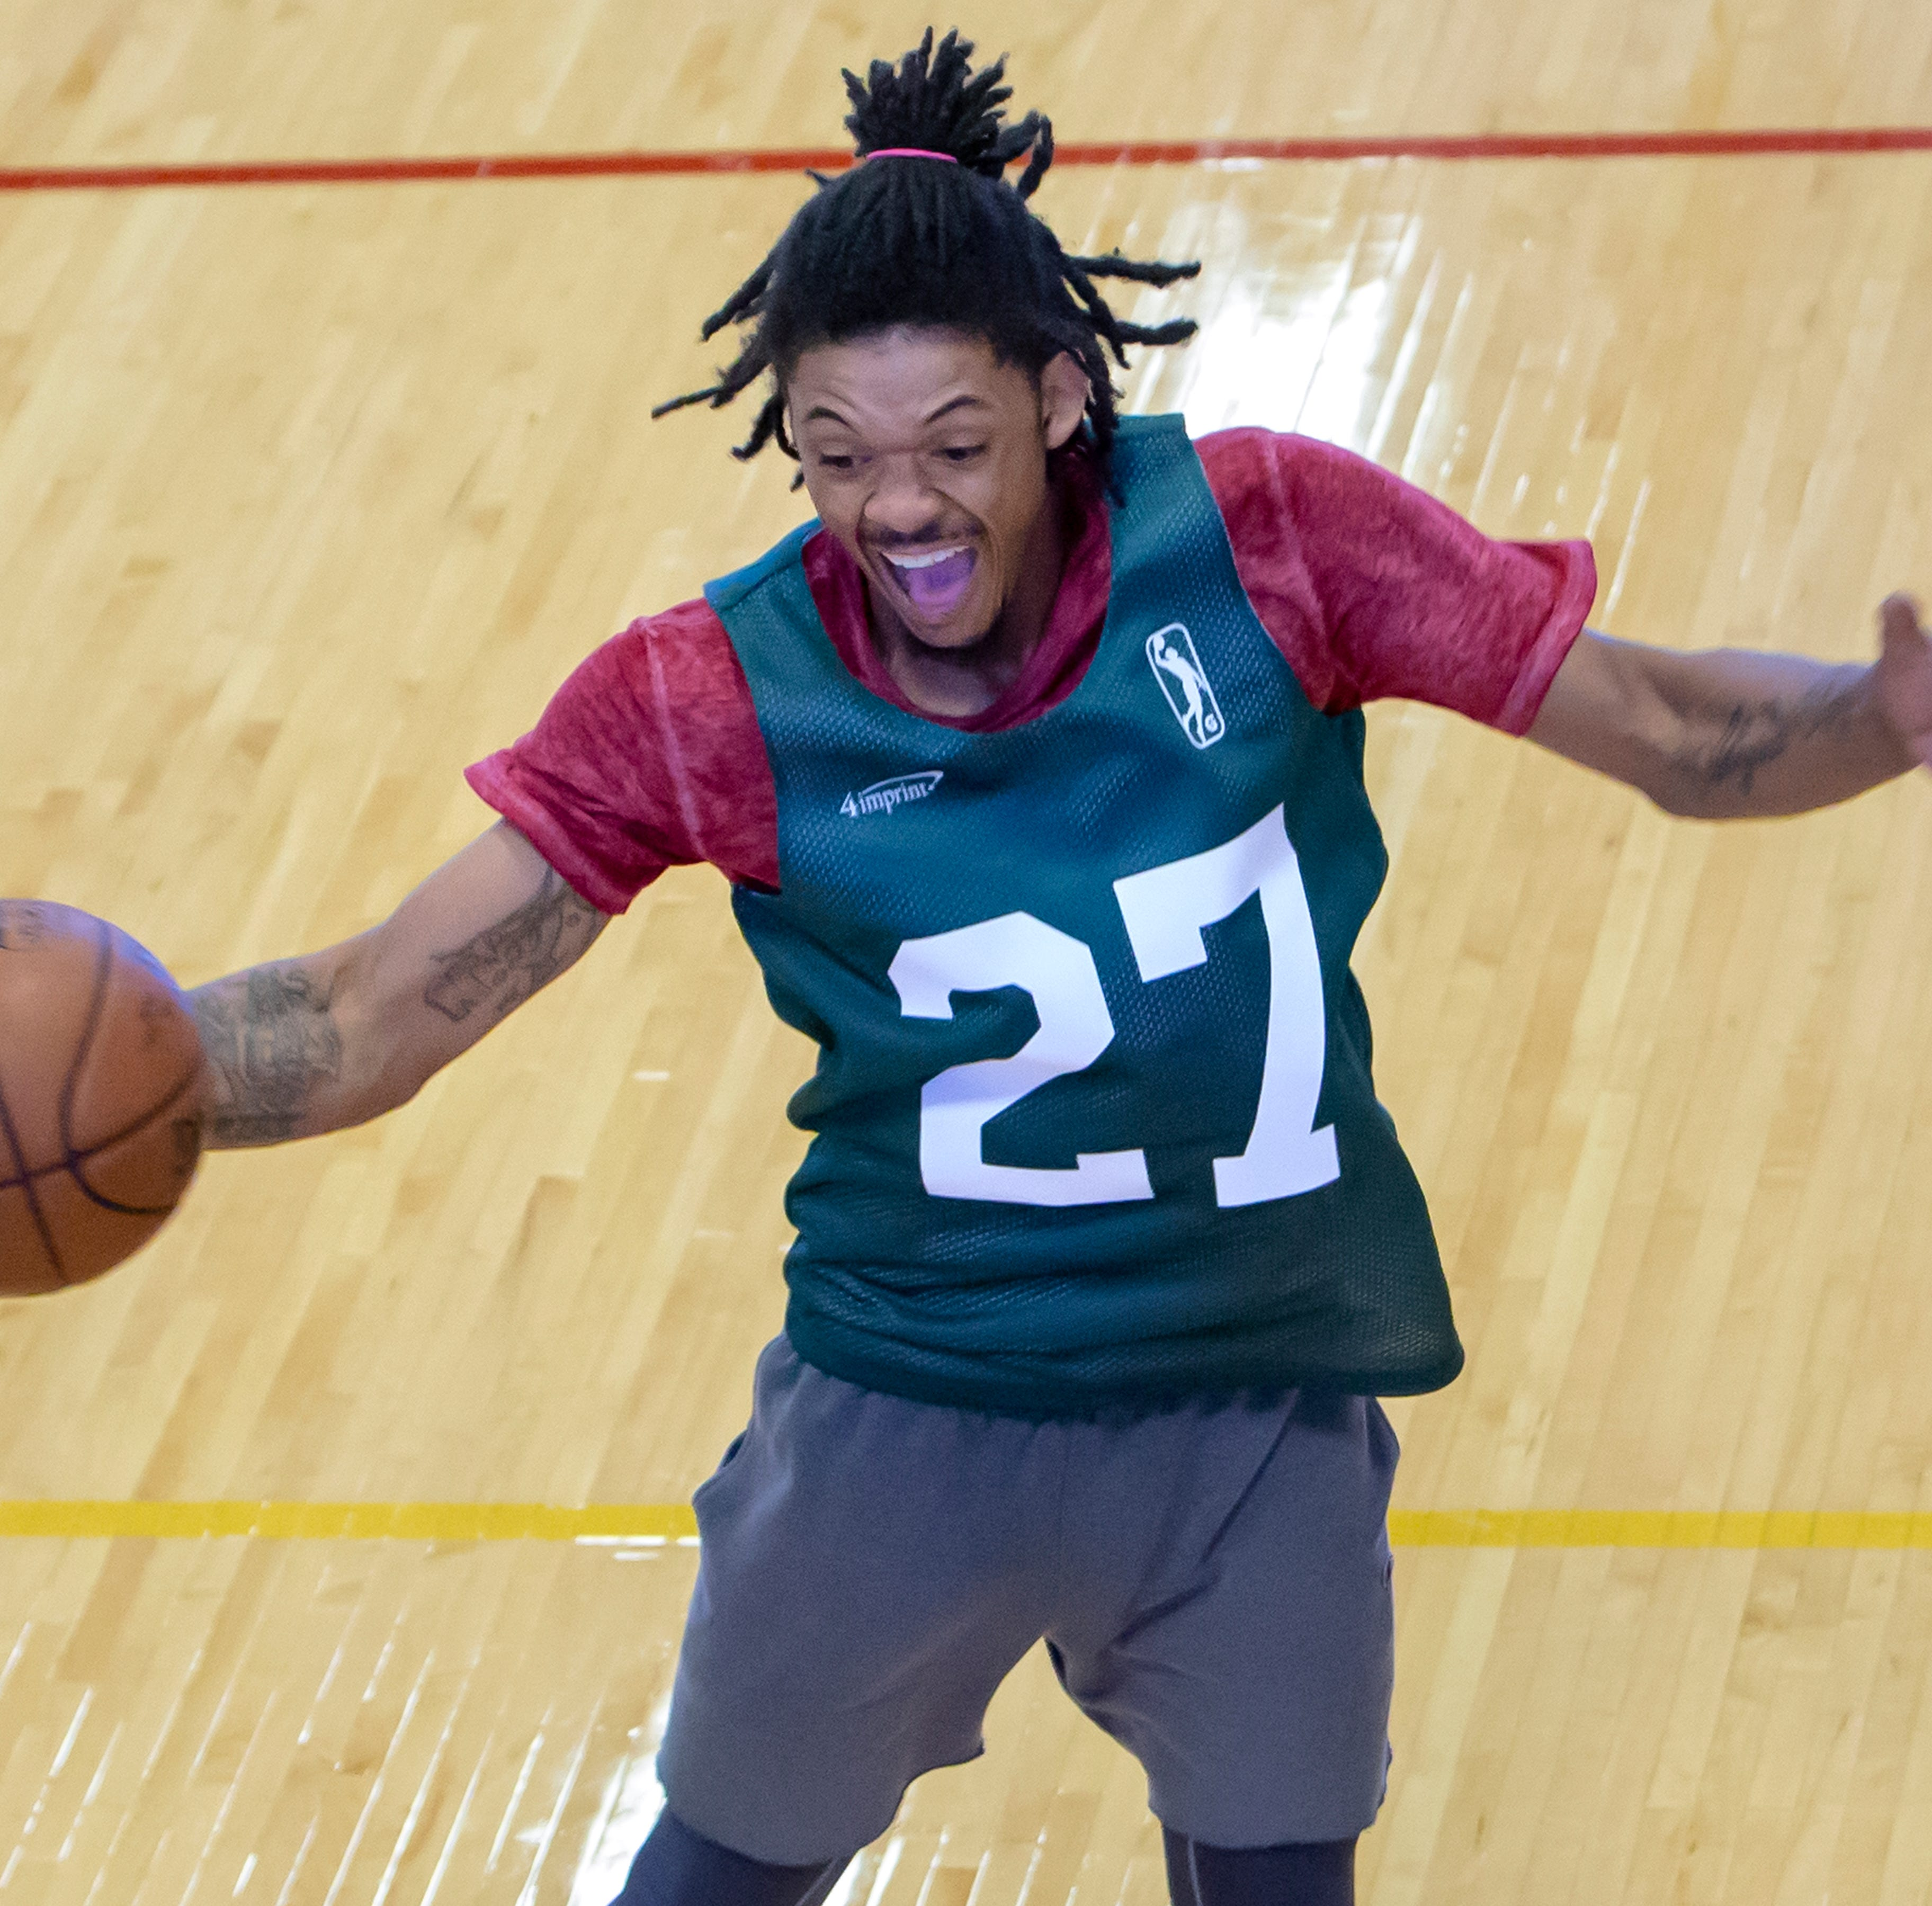 Players from around the world travel to Oshkosh for a chance to play with the Wisconsin Herd